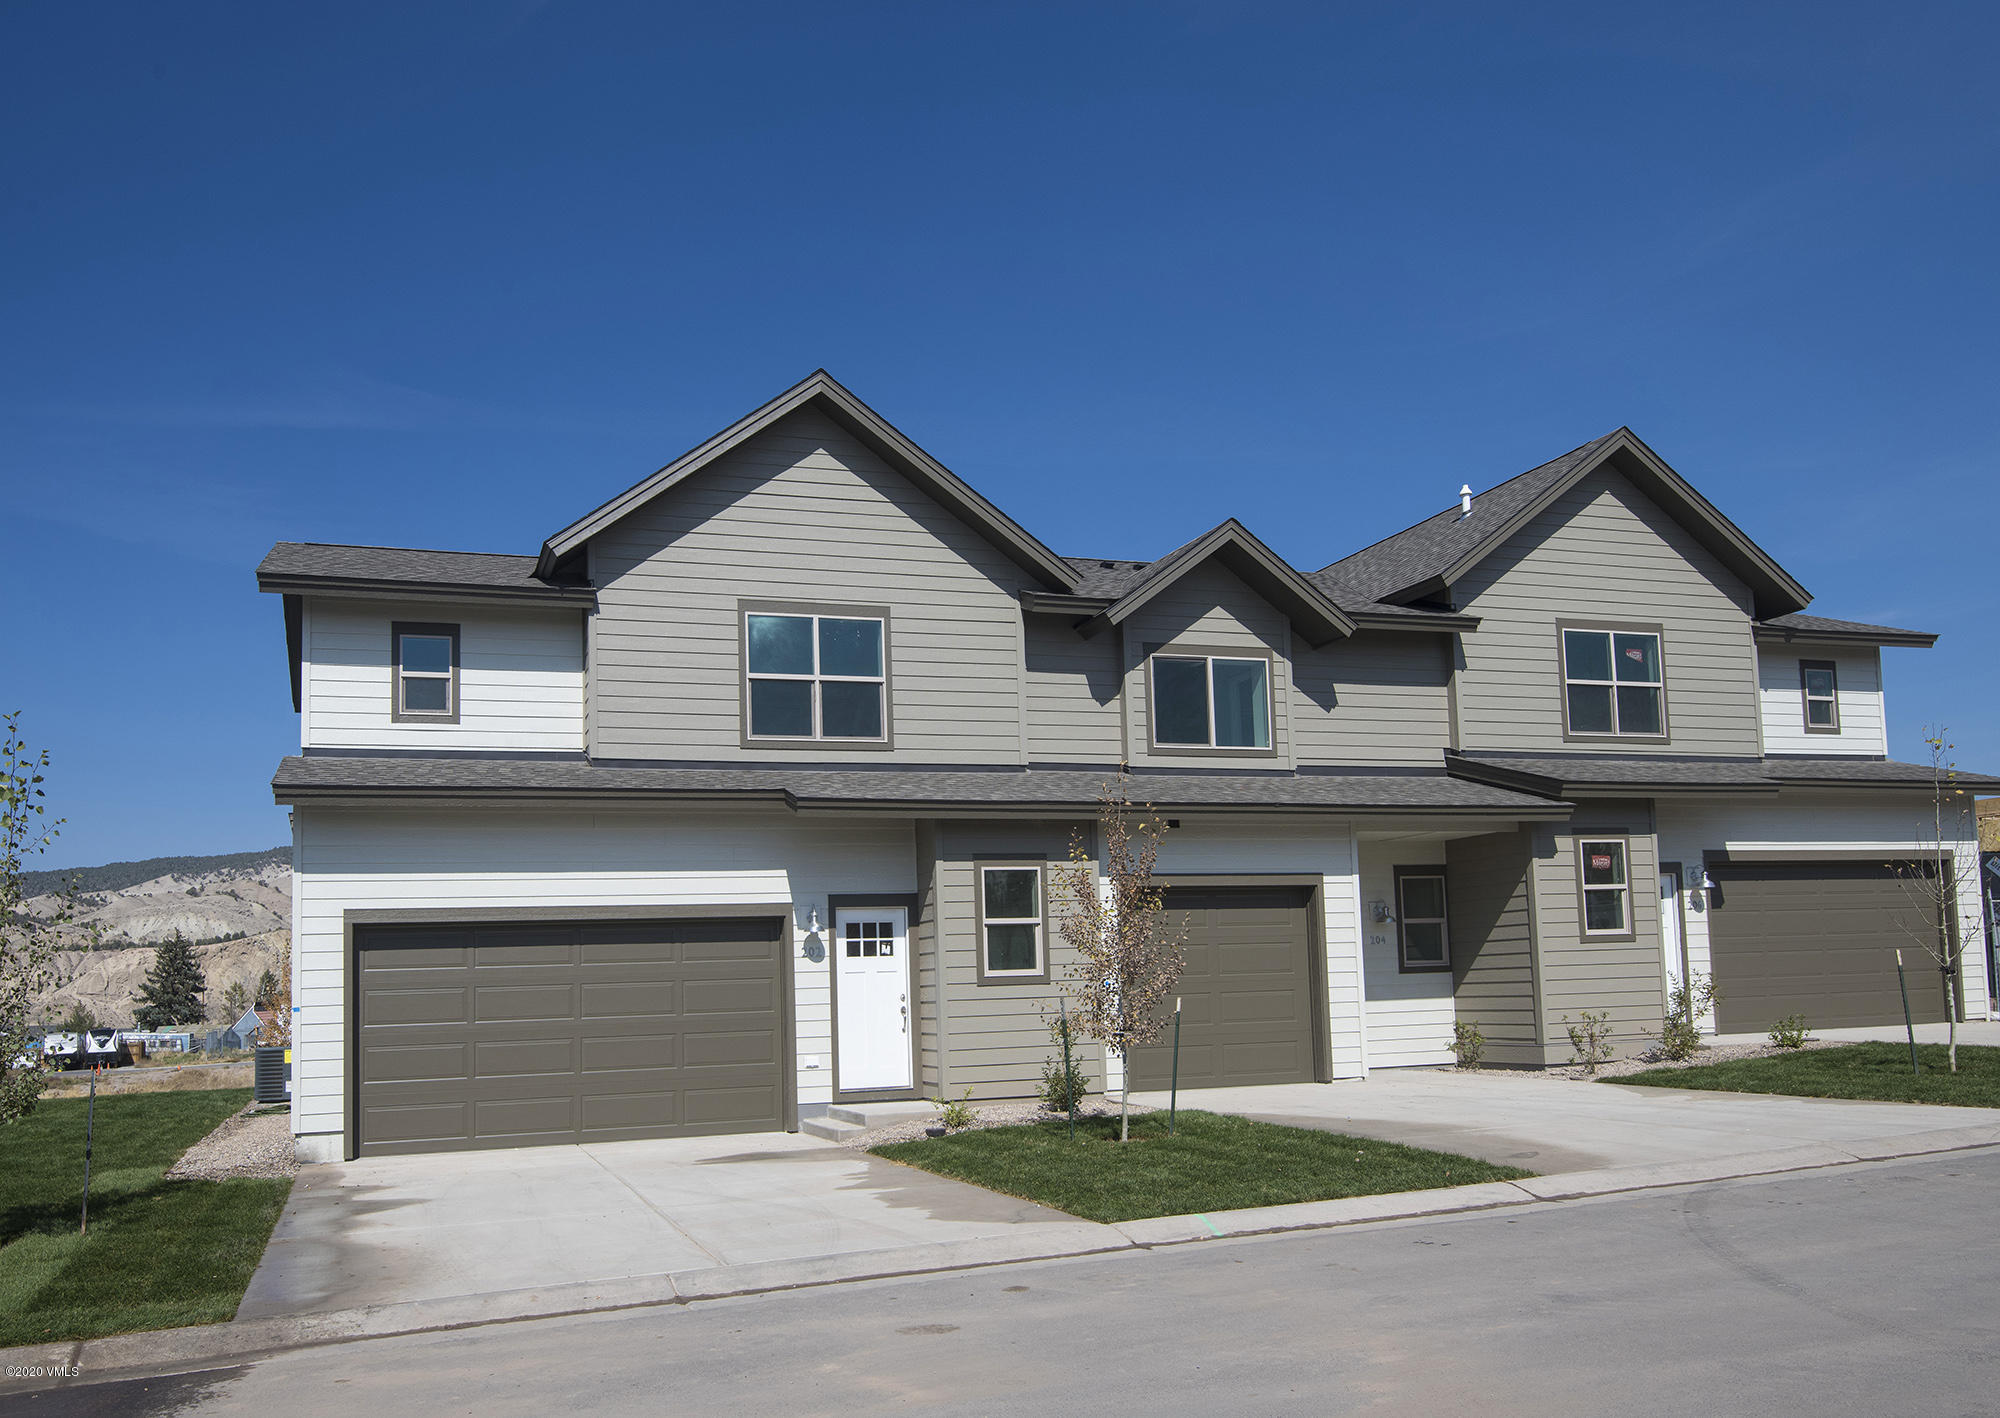 BRAND NEW TOWNHOME! Now Under Construction! Well-designed, site-built, 3 bedroom, 2.5 bath home with an attached 2-car garage. Incredibly convenient location close to Costco, Gypsum Rec Ctr, and Eagle County Airport. Only minutes to world-class recreation of all types. Standard finishes include vaulted ceilings, LVT flooring, quartz countertops, kitchen pantry, & stainless steel appliances. Laundry room conveniently located on the bedroom level.